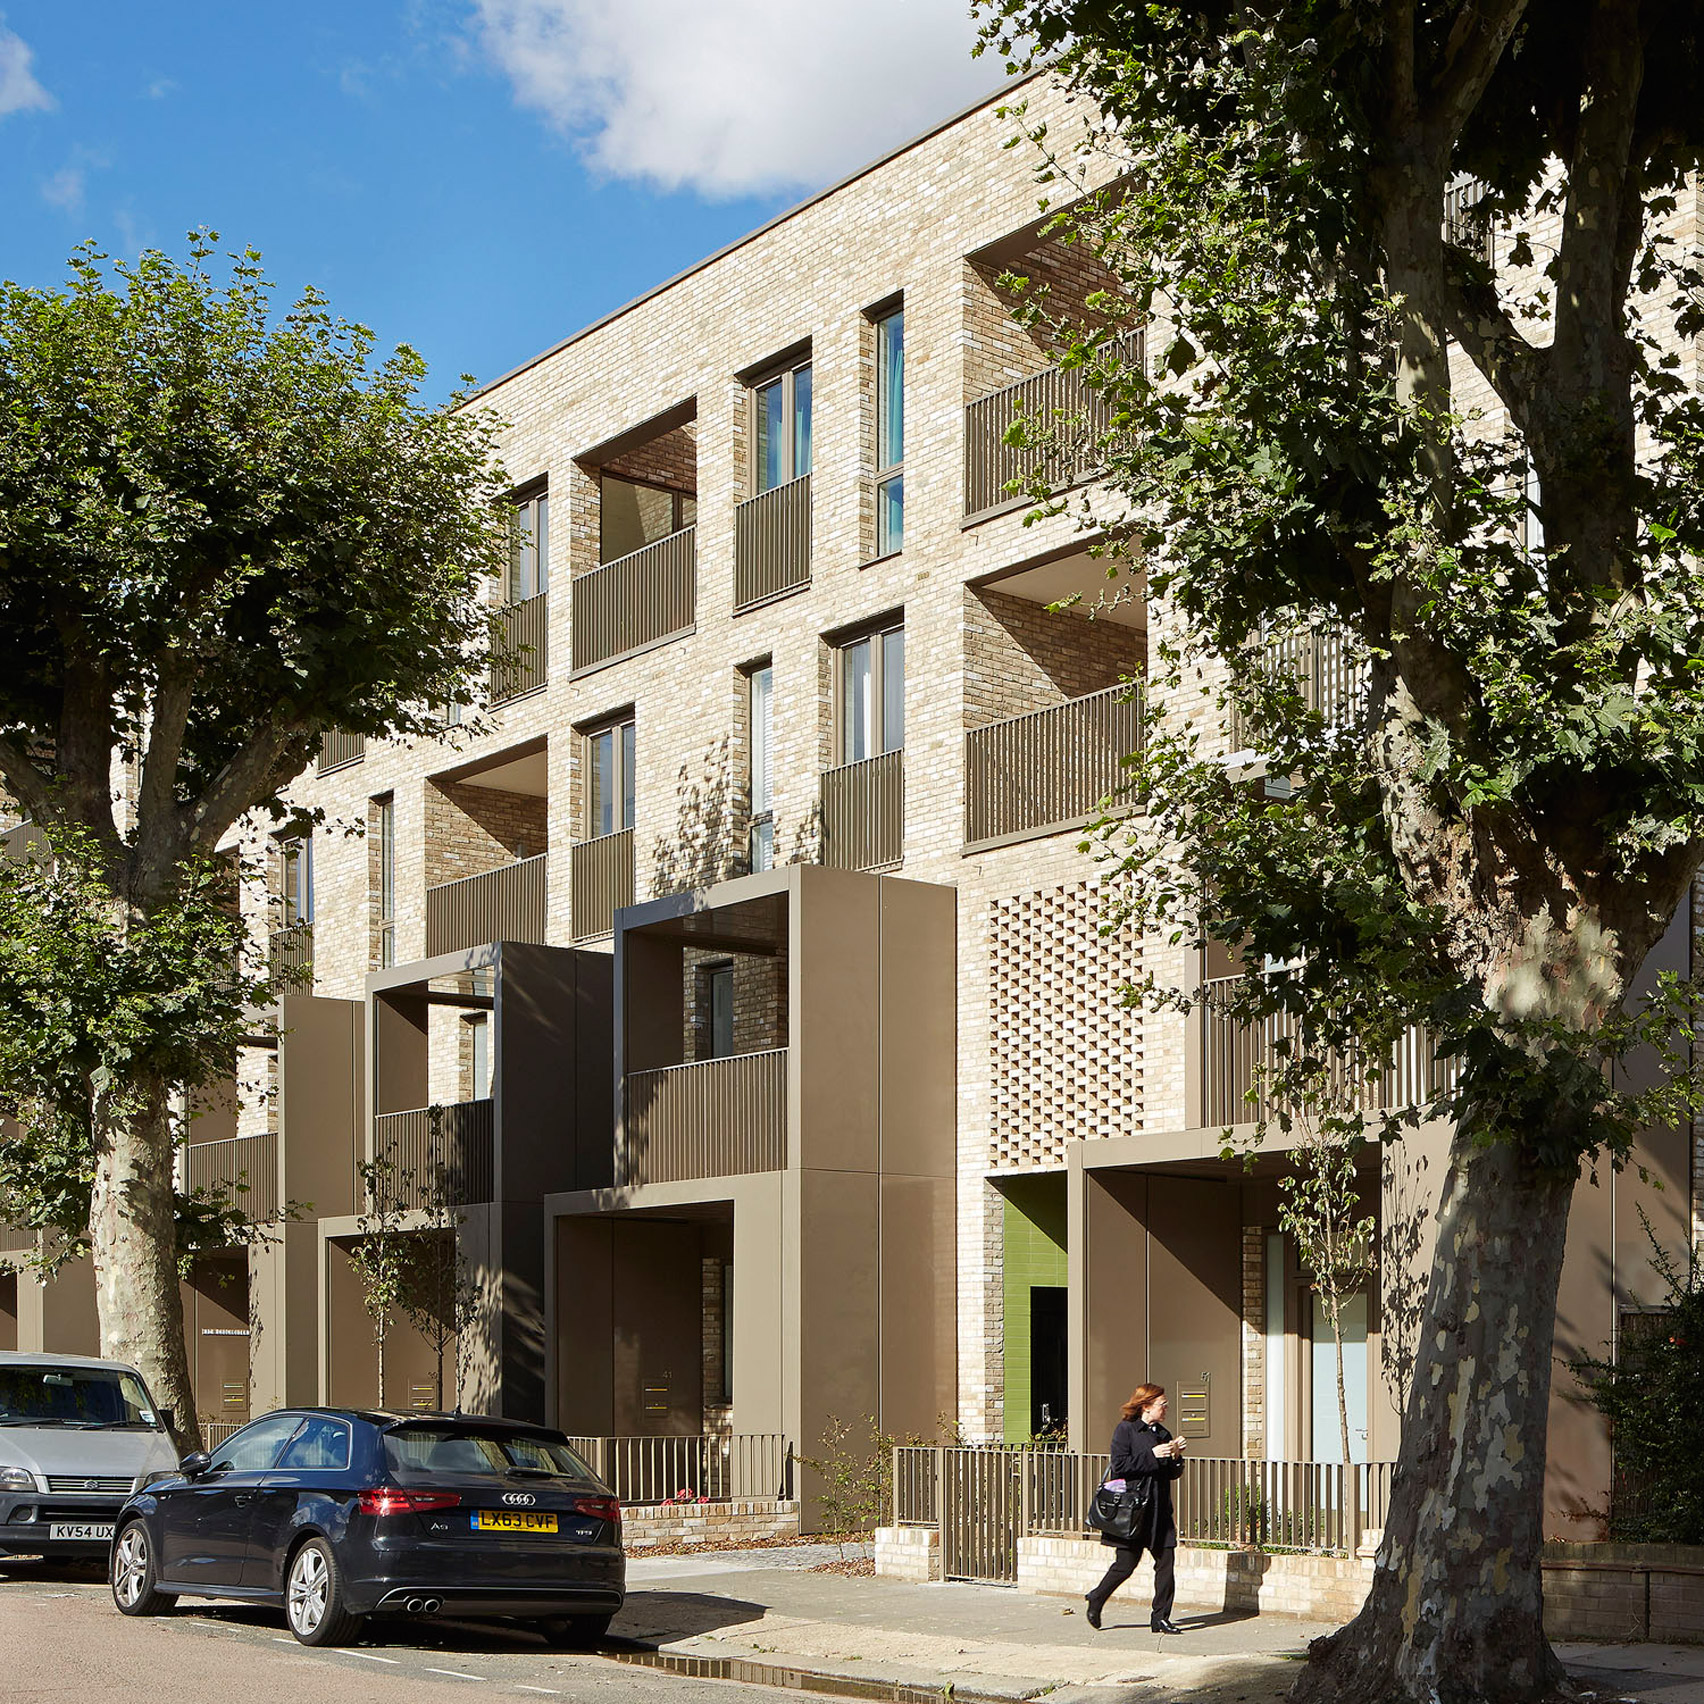 Bronze Coloured Balconies Project From Trio Of Brick Housing Blocks By  Alison Brooks Architects